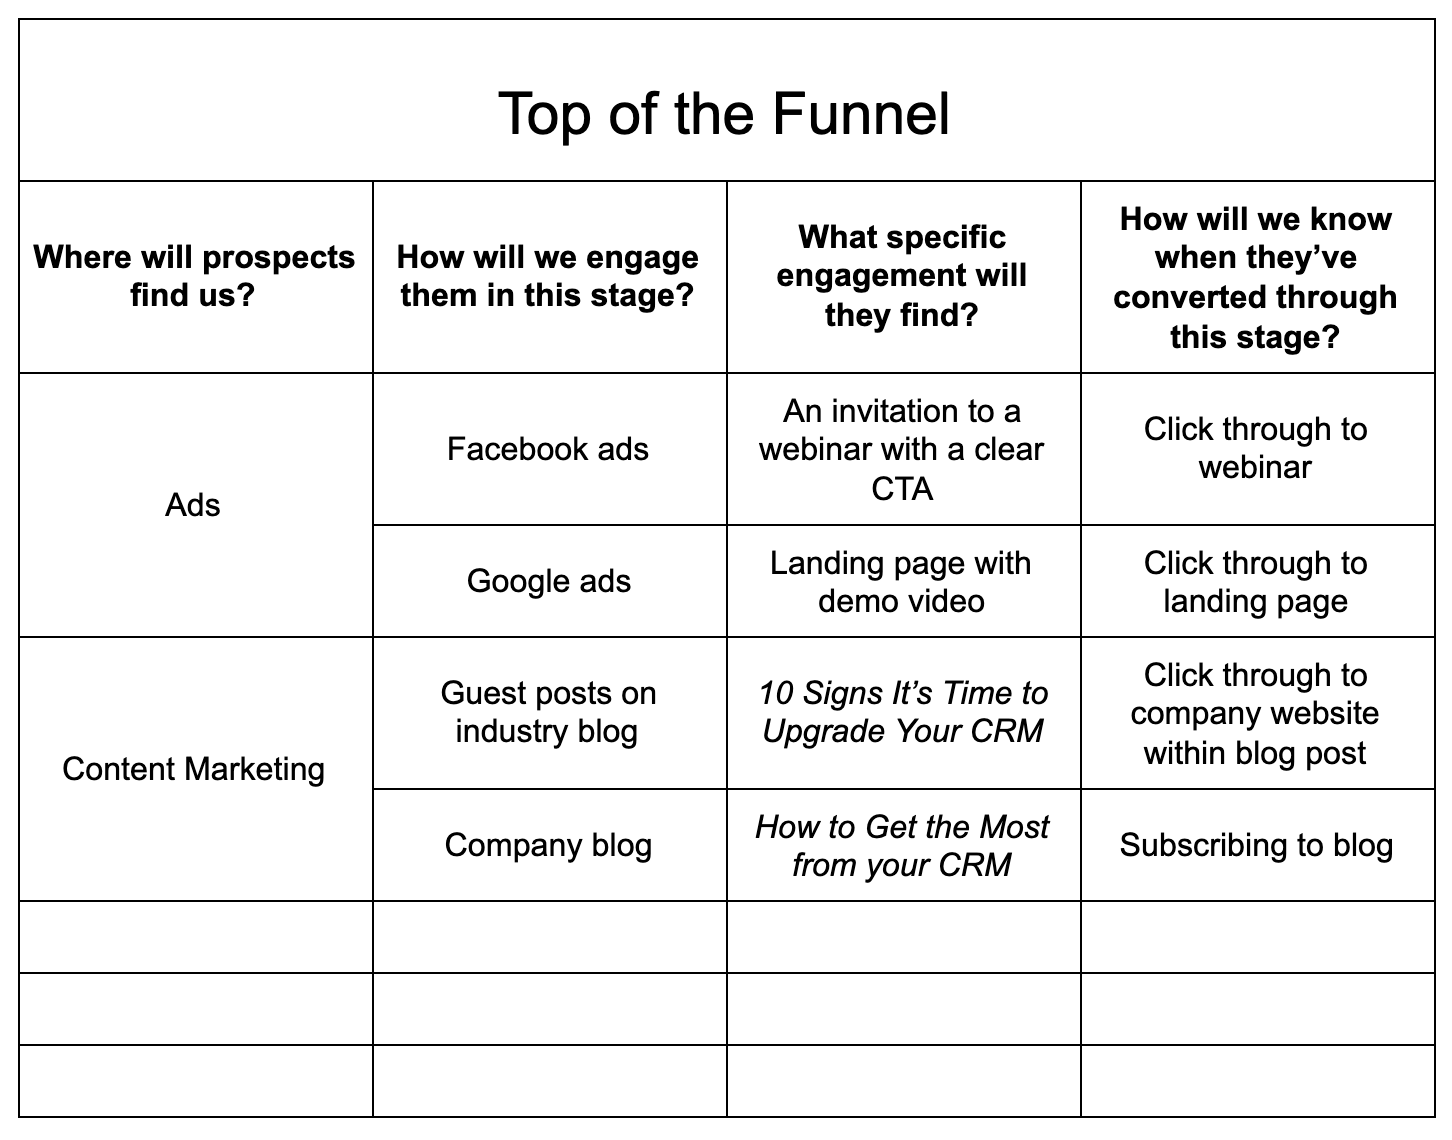 sales funnel template: top of the funnel